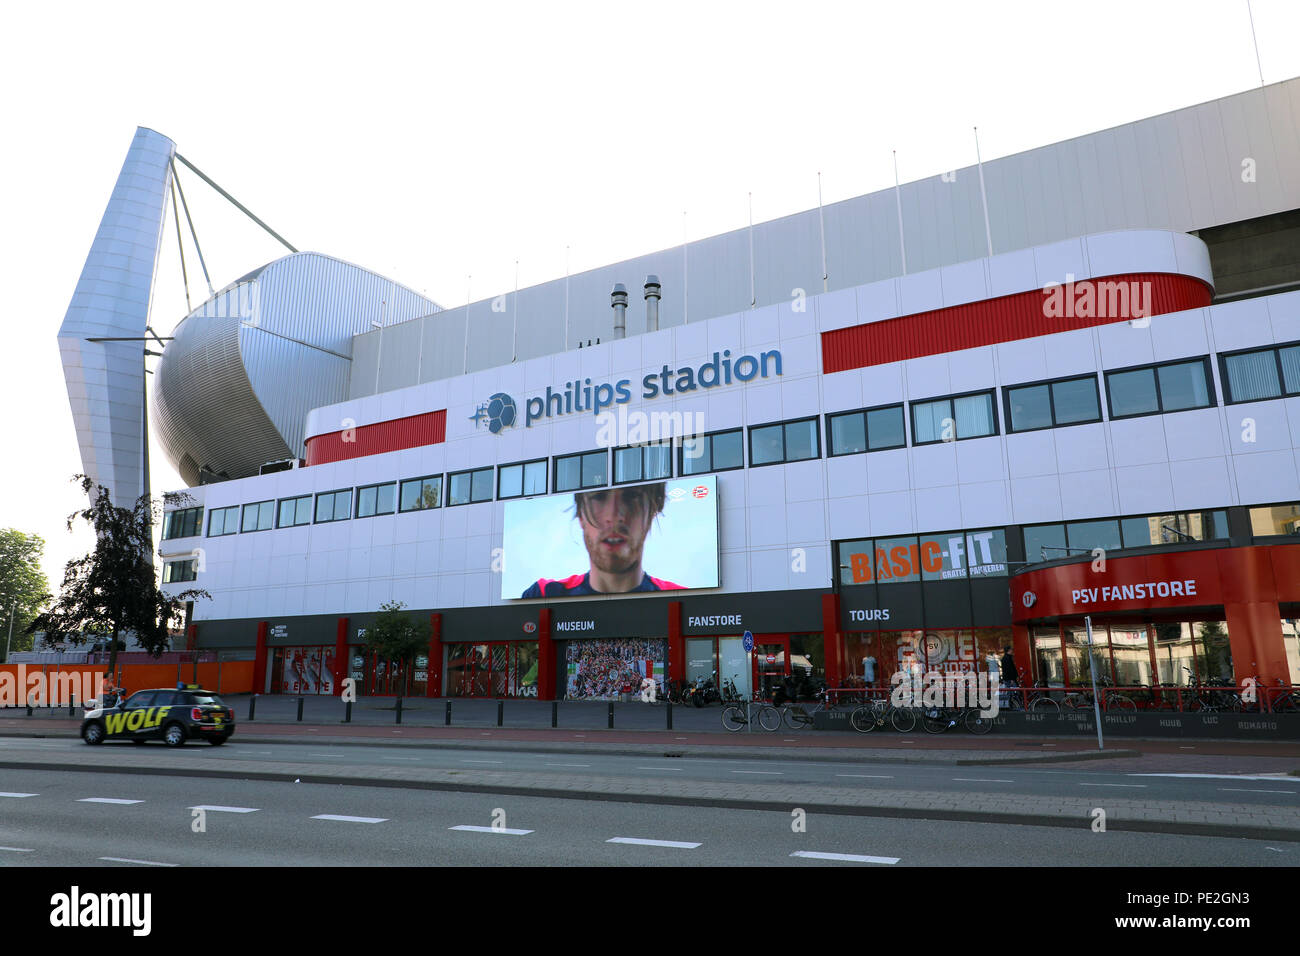 EINDHOVEN, NETHERLANDS - JUNE 5, 2018: Philips Stadion is a football stadium in Eindhoven, Netherlands and it is the home of PSV Eindhoven football te - Stock Image